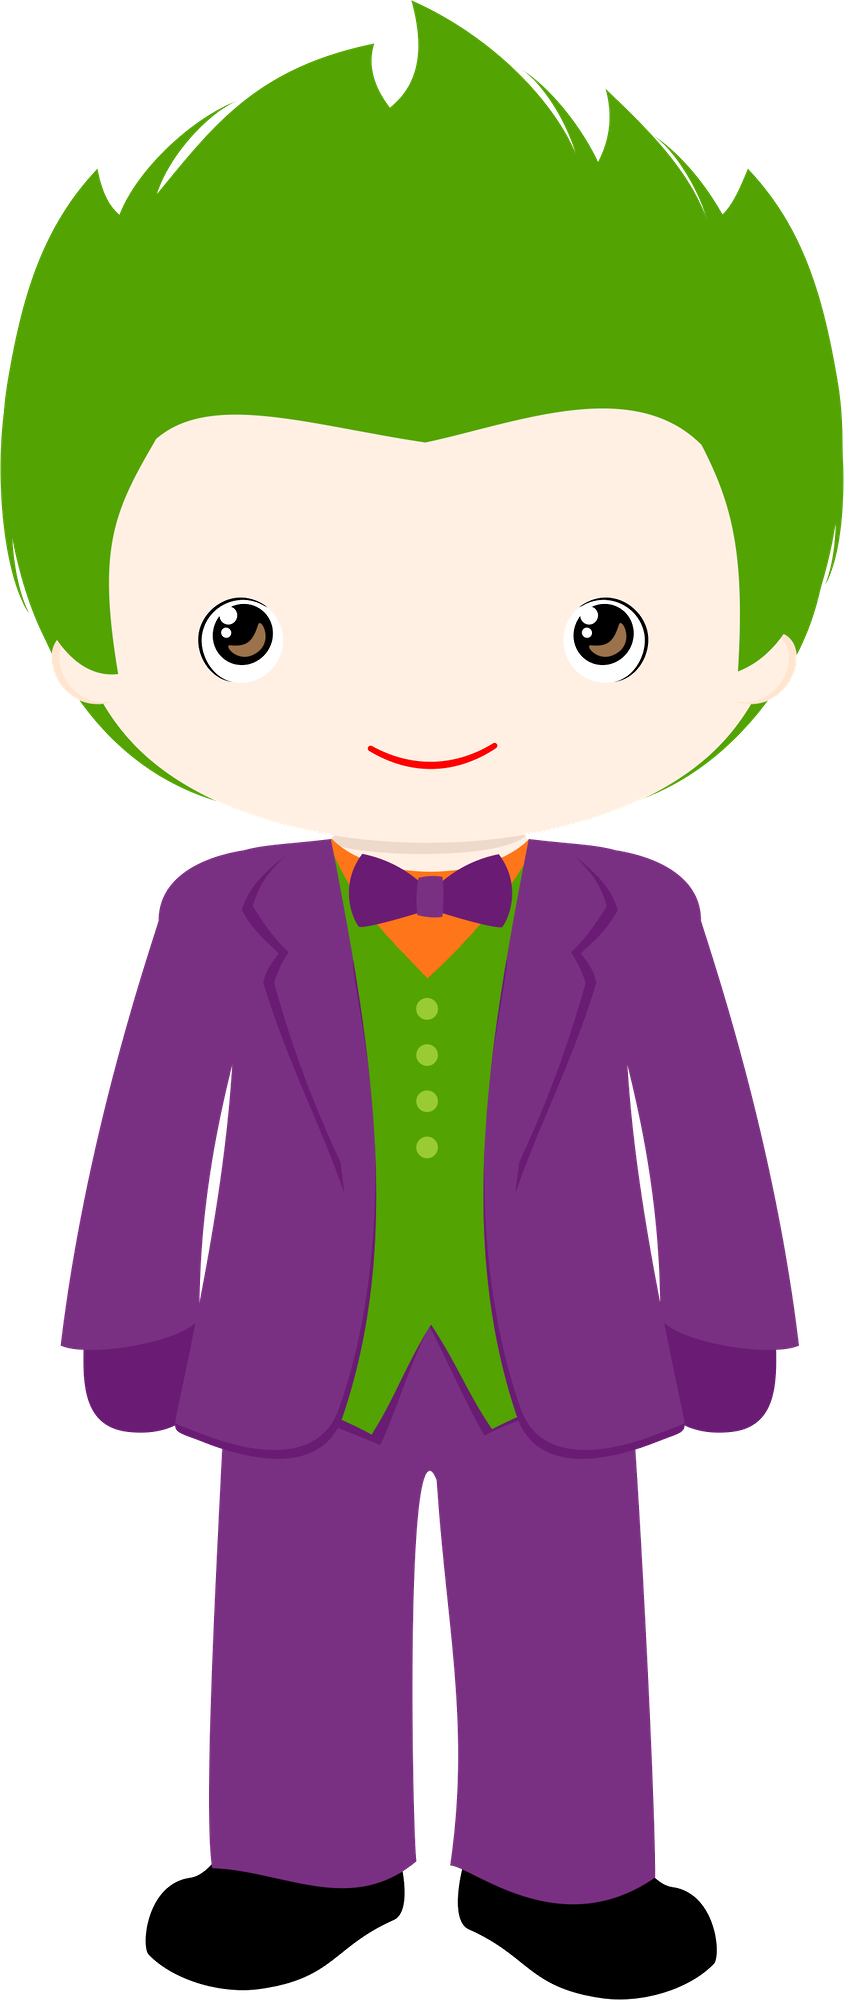 Joker clipart batman